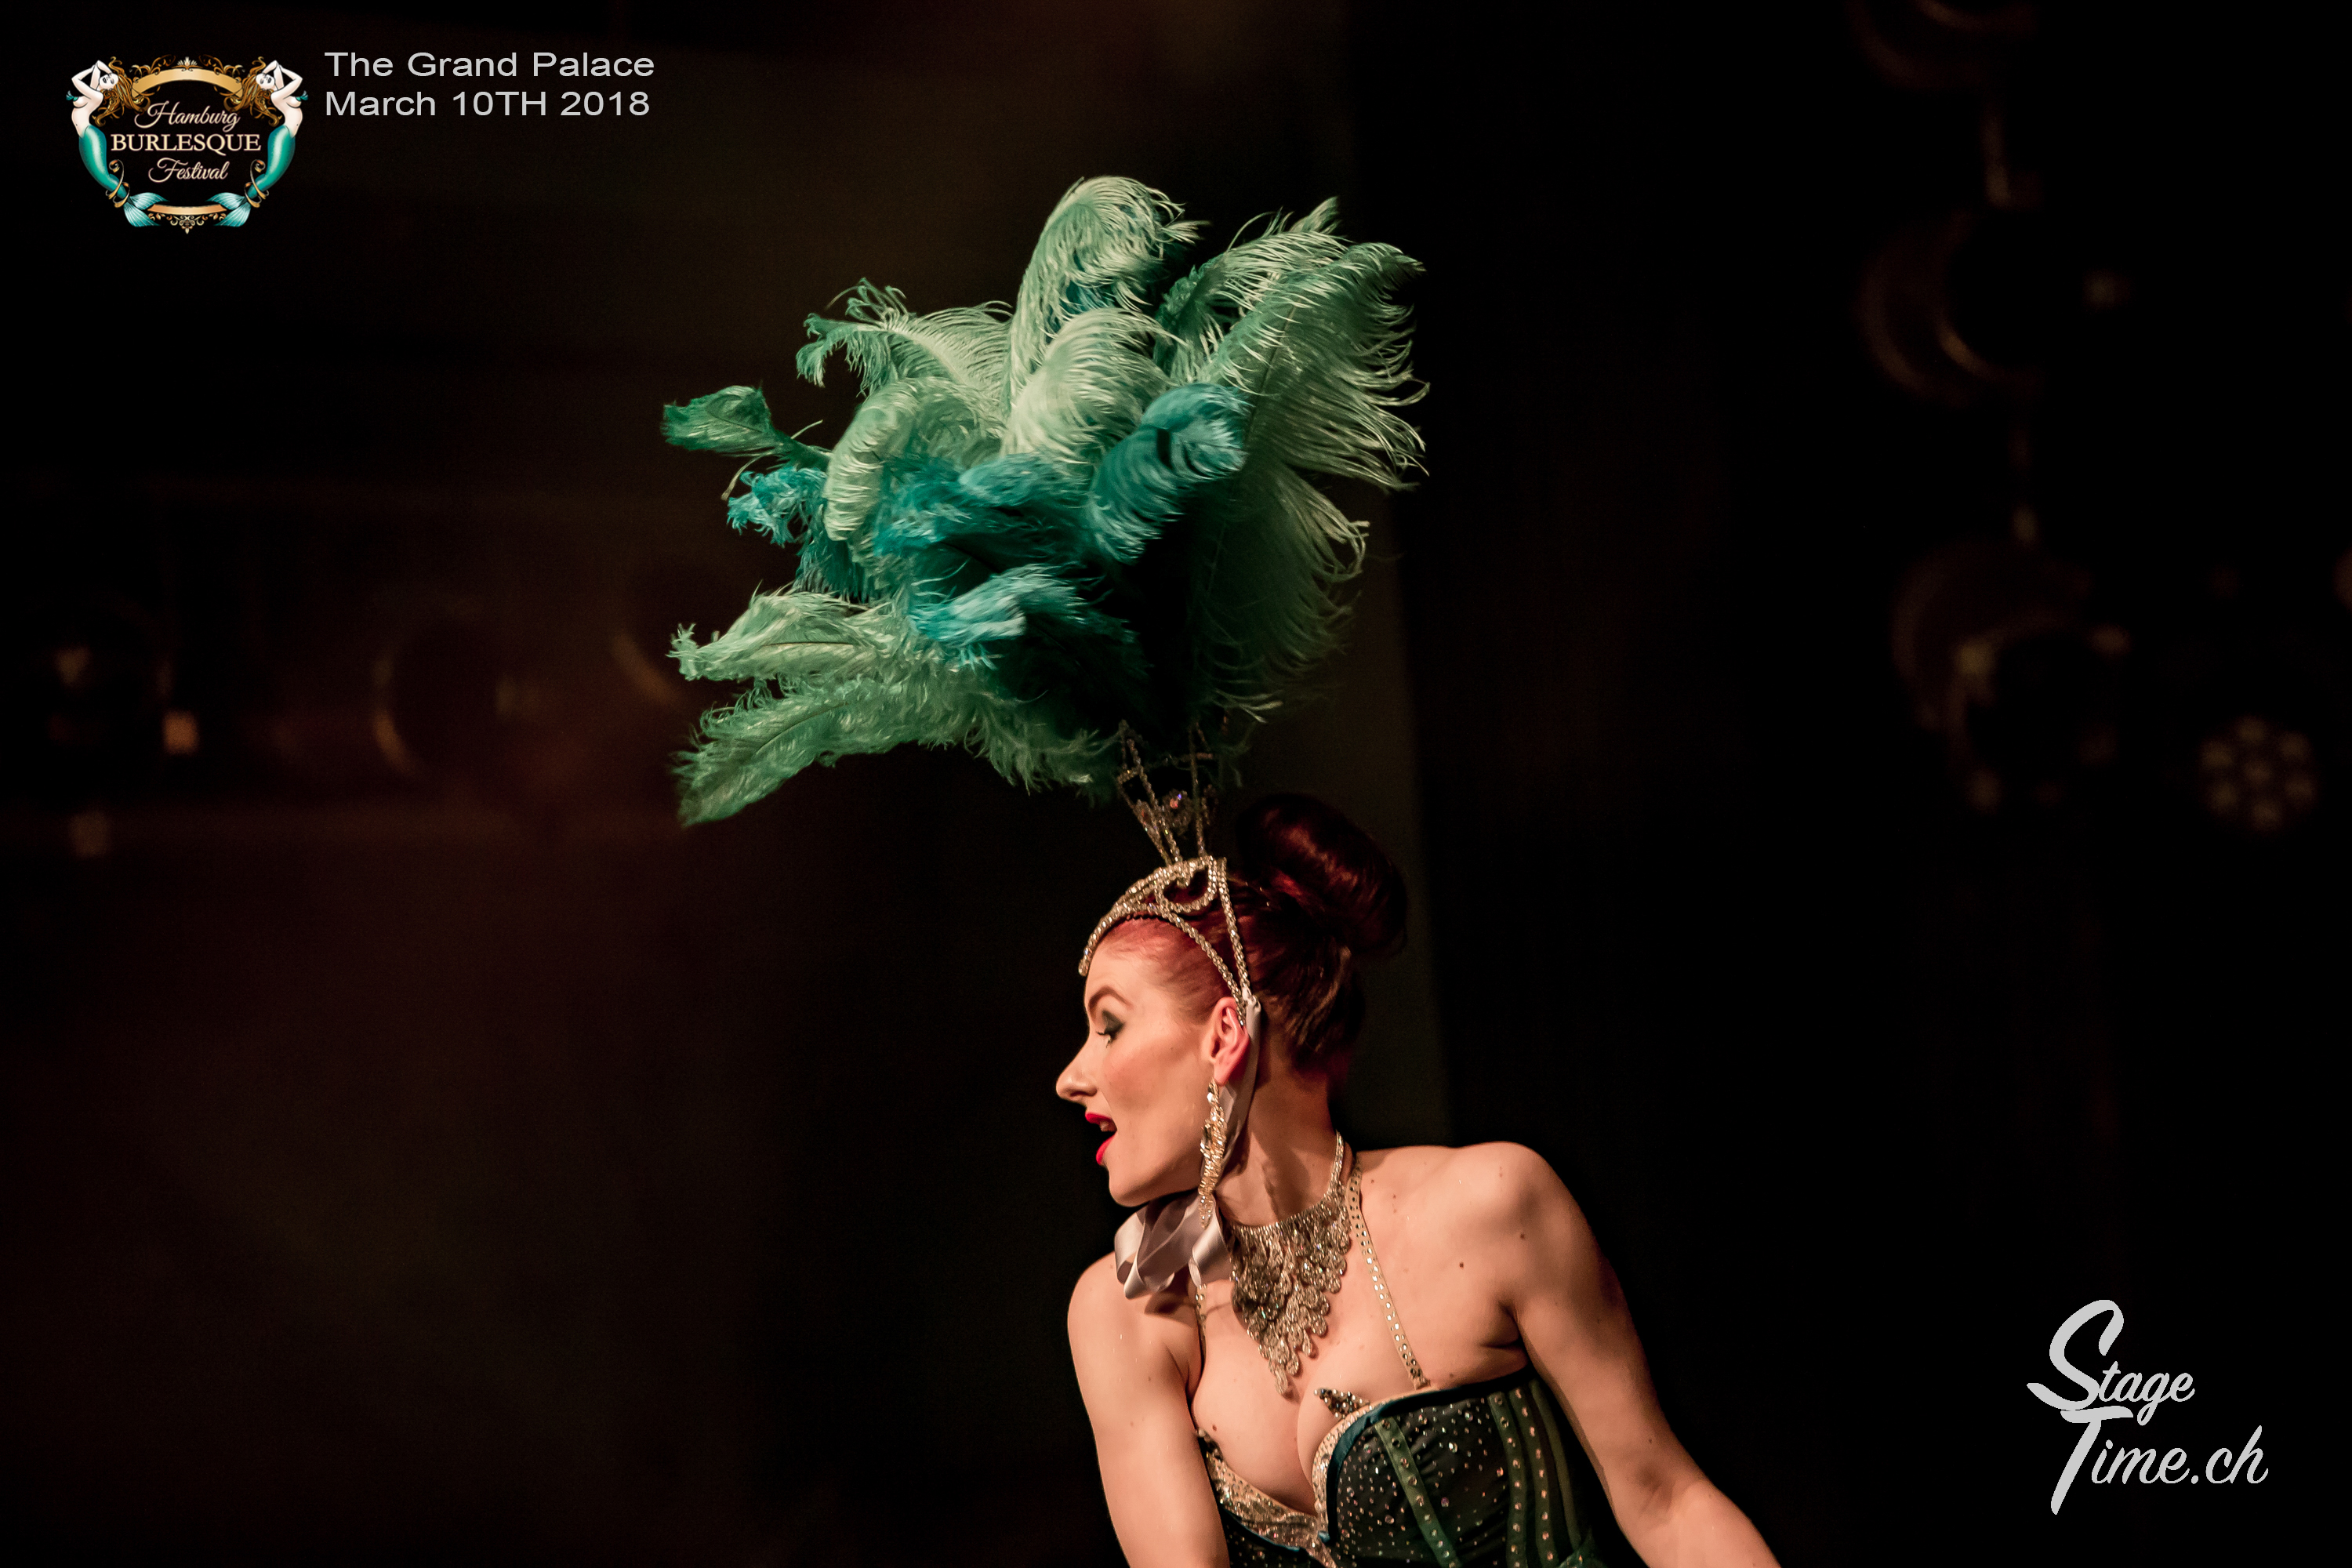 Hamburg_Burlesque_Festival_The_Grand_Palace__📷_Christoph_Gurtner_I_stagetime.ch-44